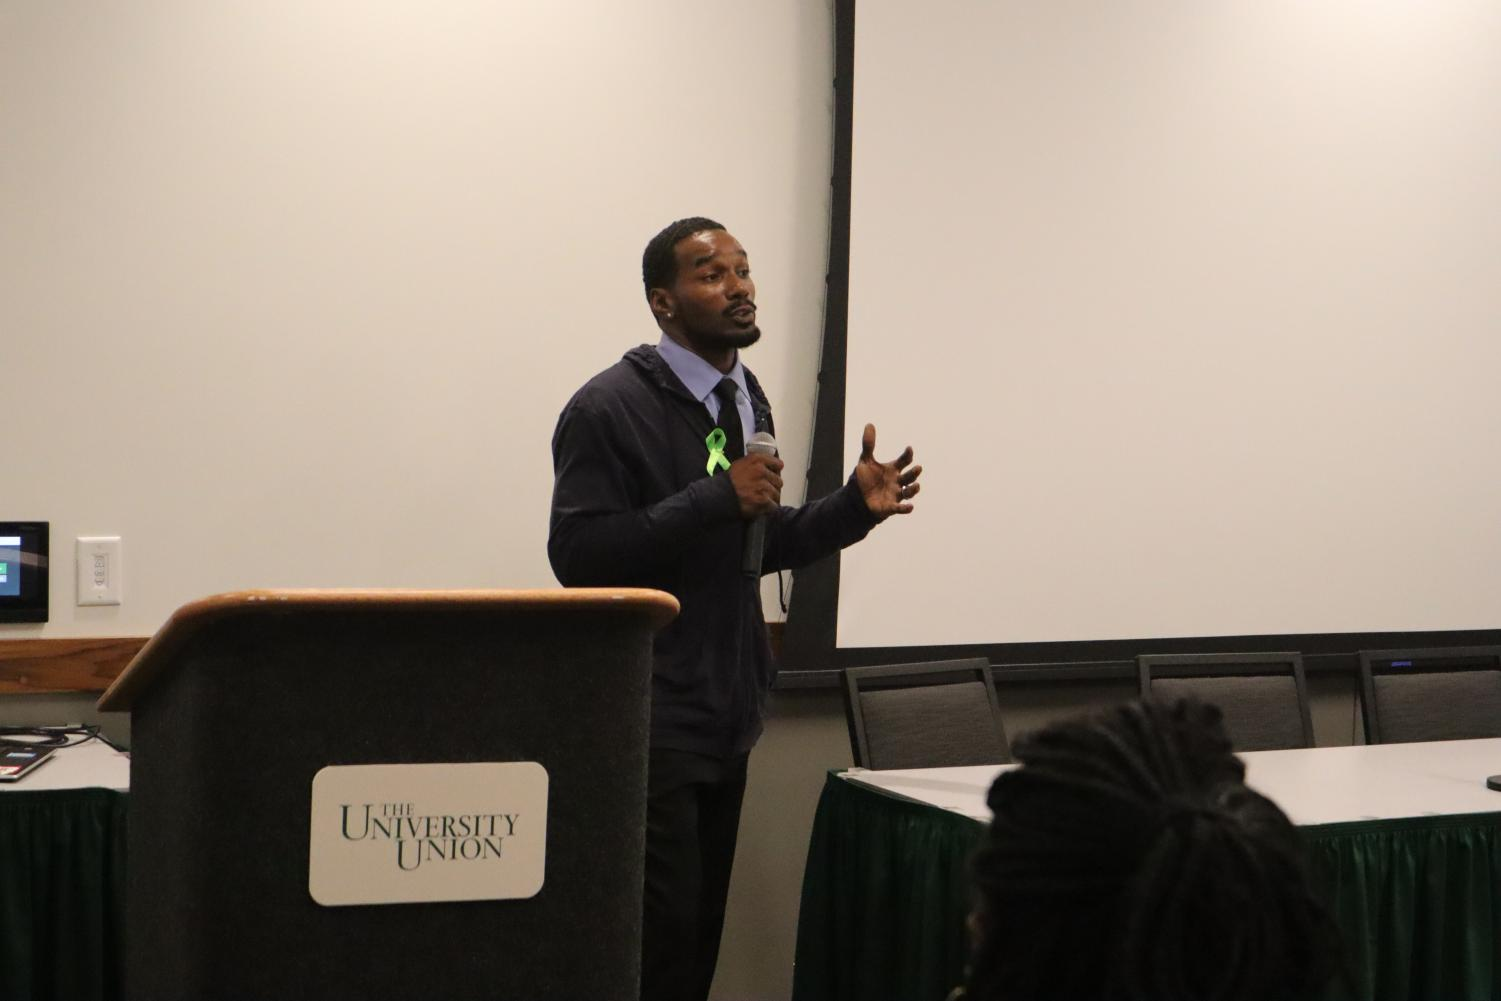 Keynote speaker Kevin Berthia explained his story dealing with depression and a suicide attempt in 2005. He spoke at Sac State's Suicide Prevention town hall on Thursday.